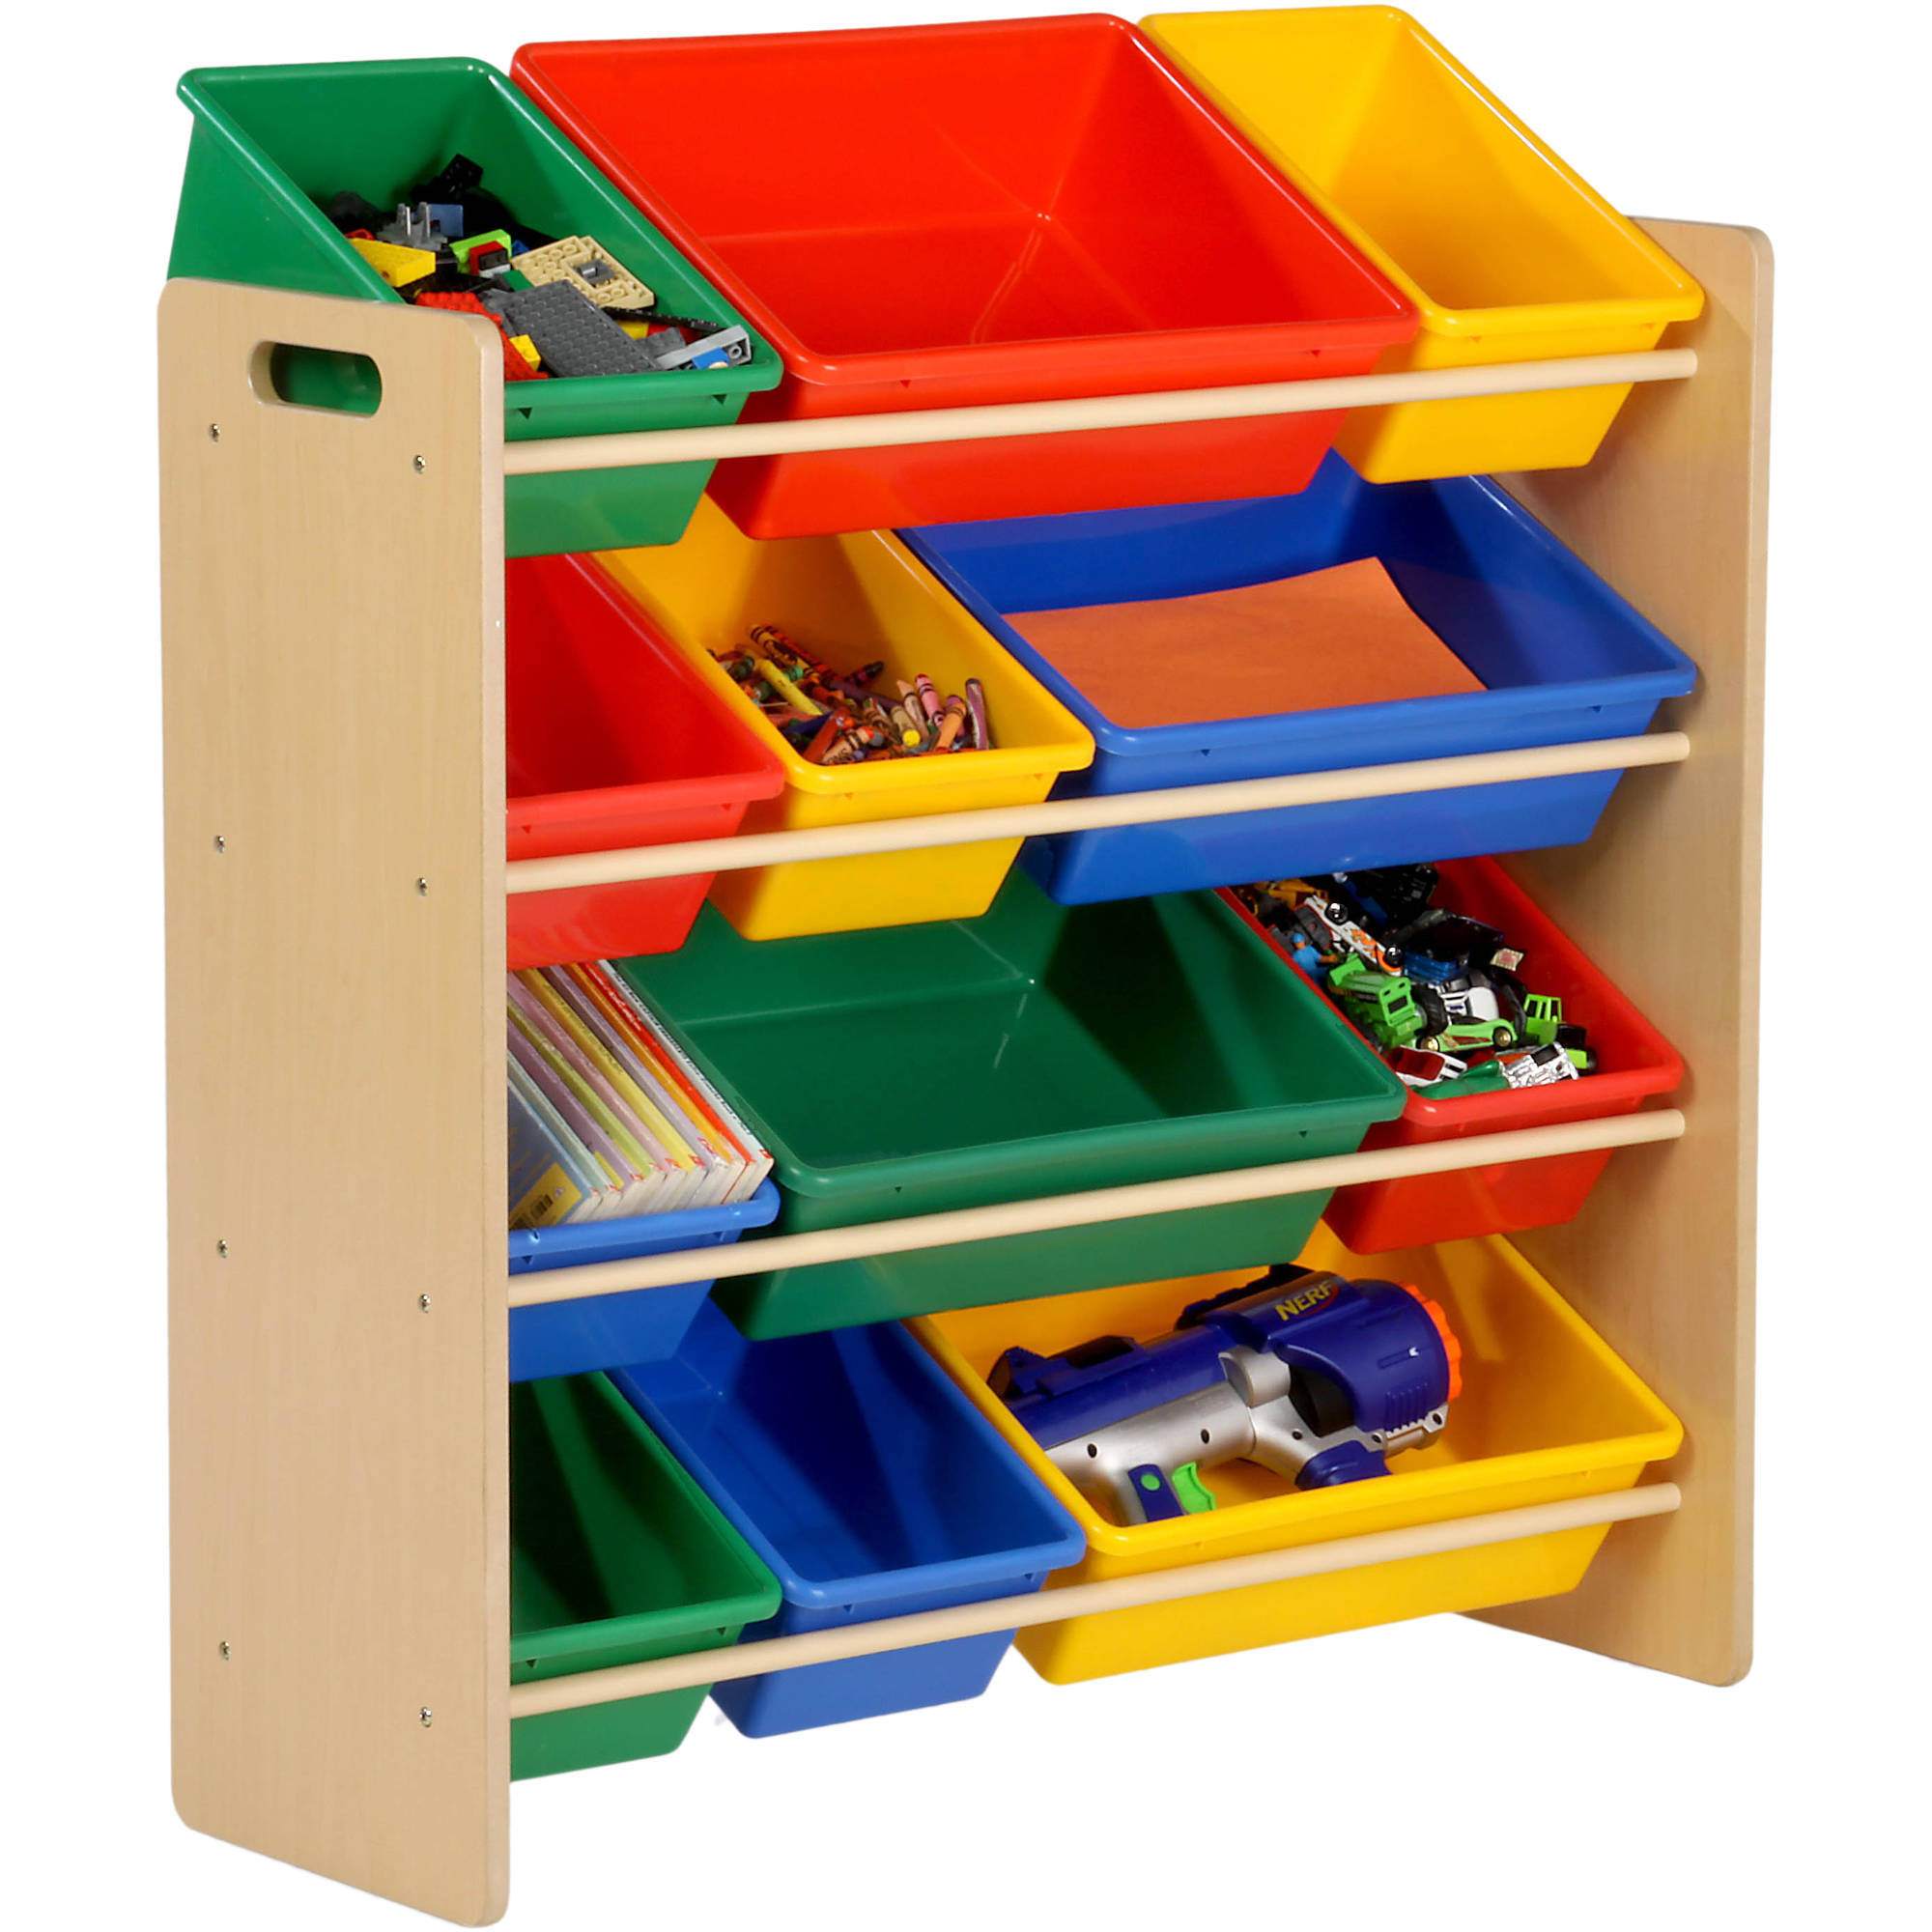 Honey Can Do Kidu0027s Toy Organizer with 12 Storage Bins Multicolor - Walmart.com  sc 1 st  Walmart & Honey Can Do Kidu0027s Toy Organizer with 12 Storage Bins Multicolor ... Aboutintivar.Com